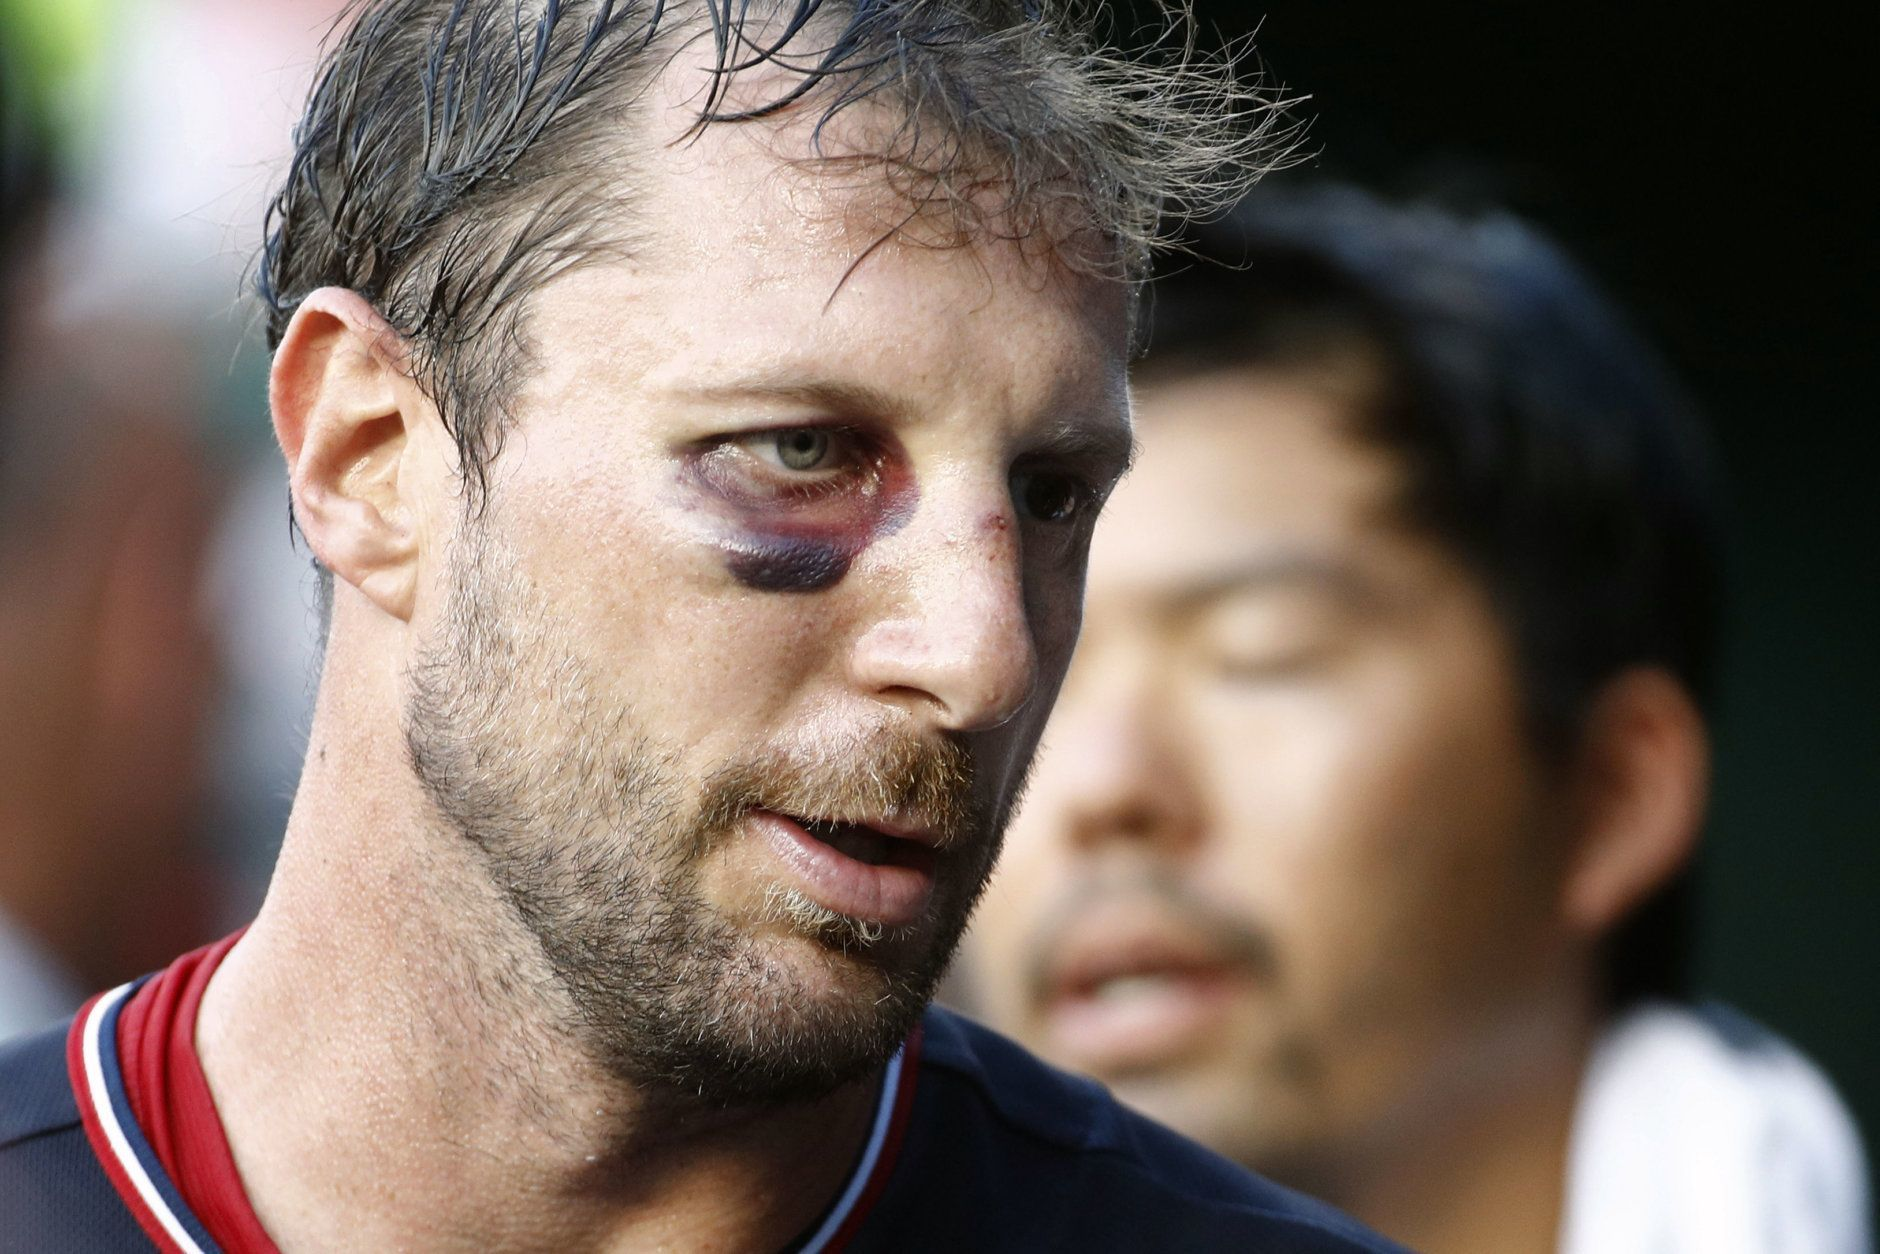 Washington Nationals starting pitcher Max Scherzer walks in the dugout between innings of the second baseball game of a doubleheader against the Philadelphia Phillies, Wednesday, June 19, 2019, in Washington. (AP Photo/Patrick Semansky)